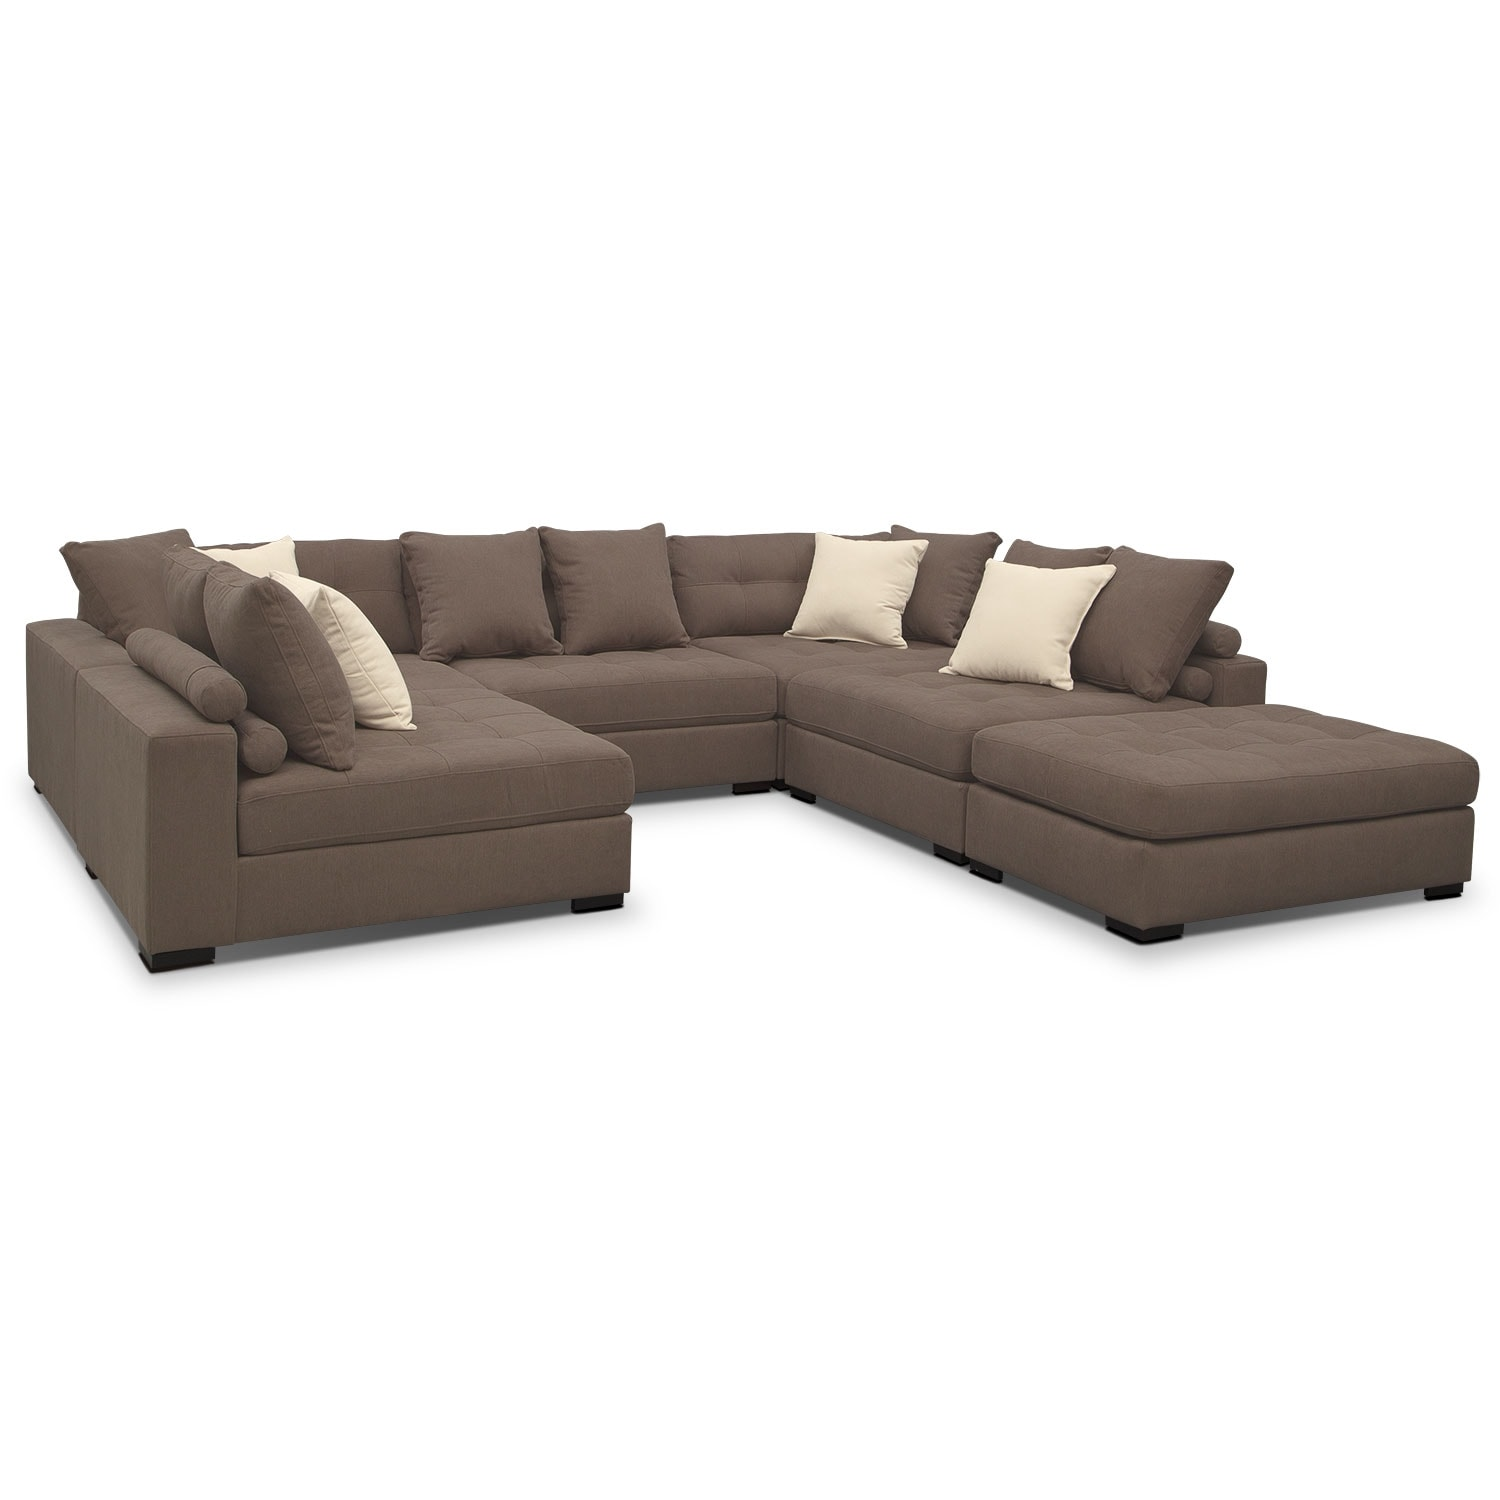 Venti 6-Piece Sectional - Mocha